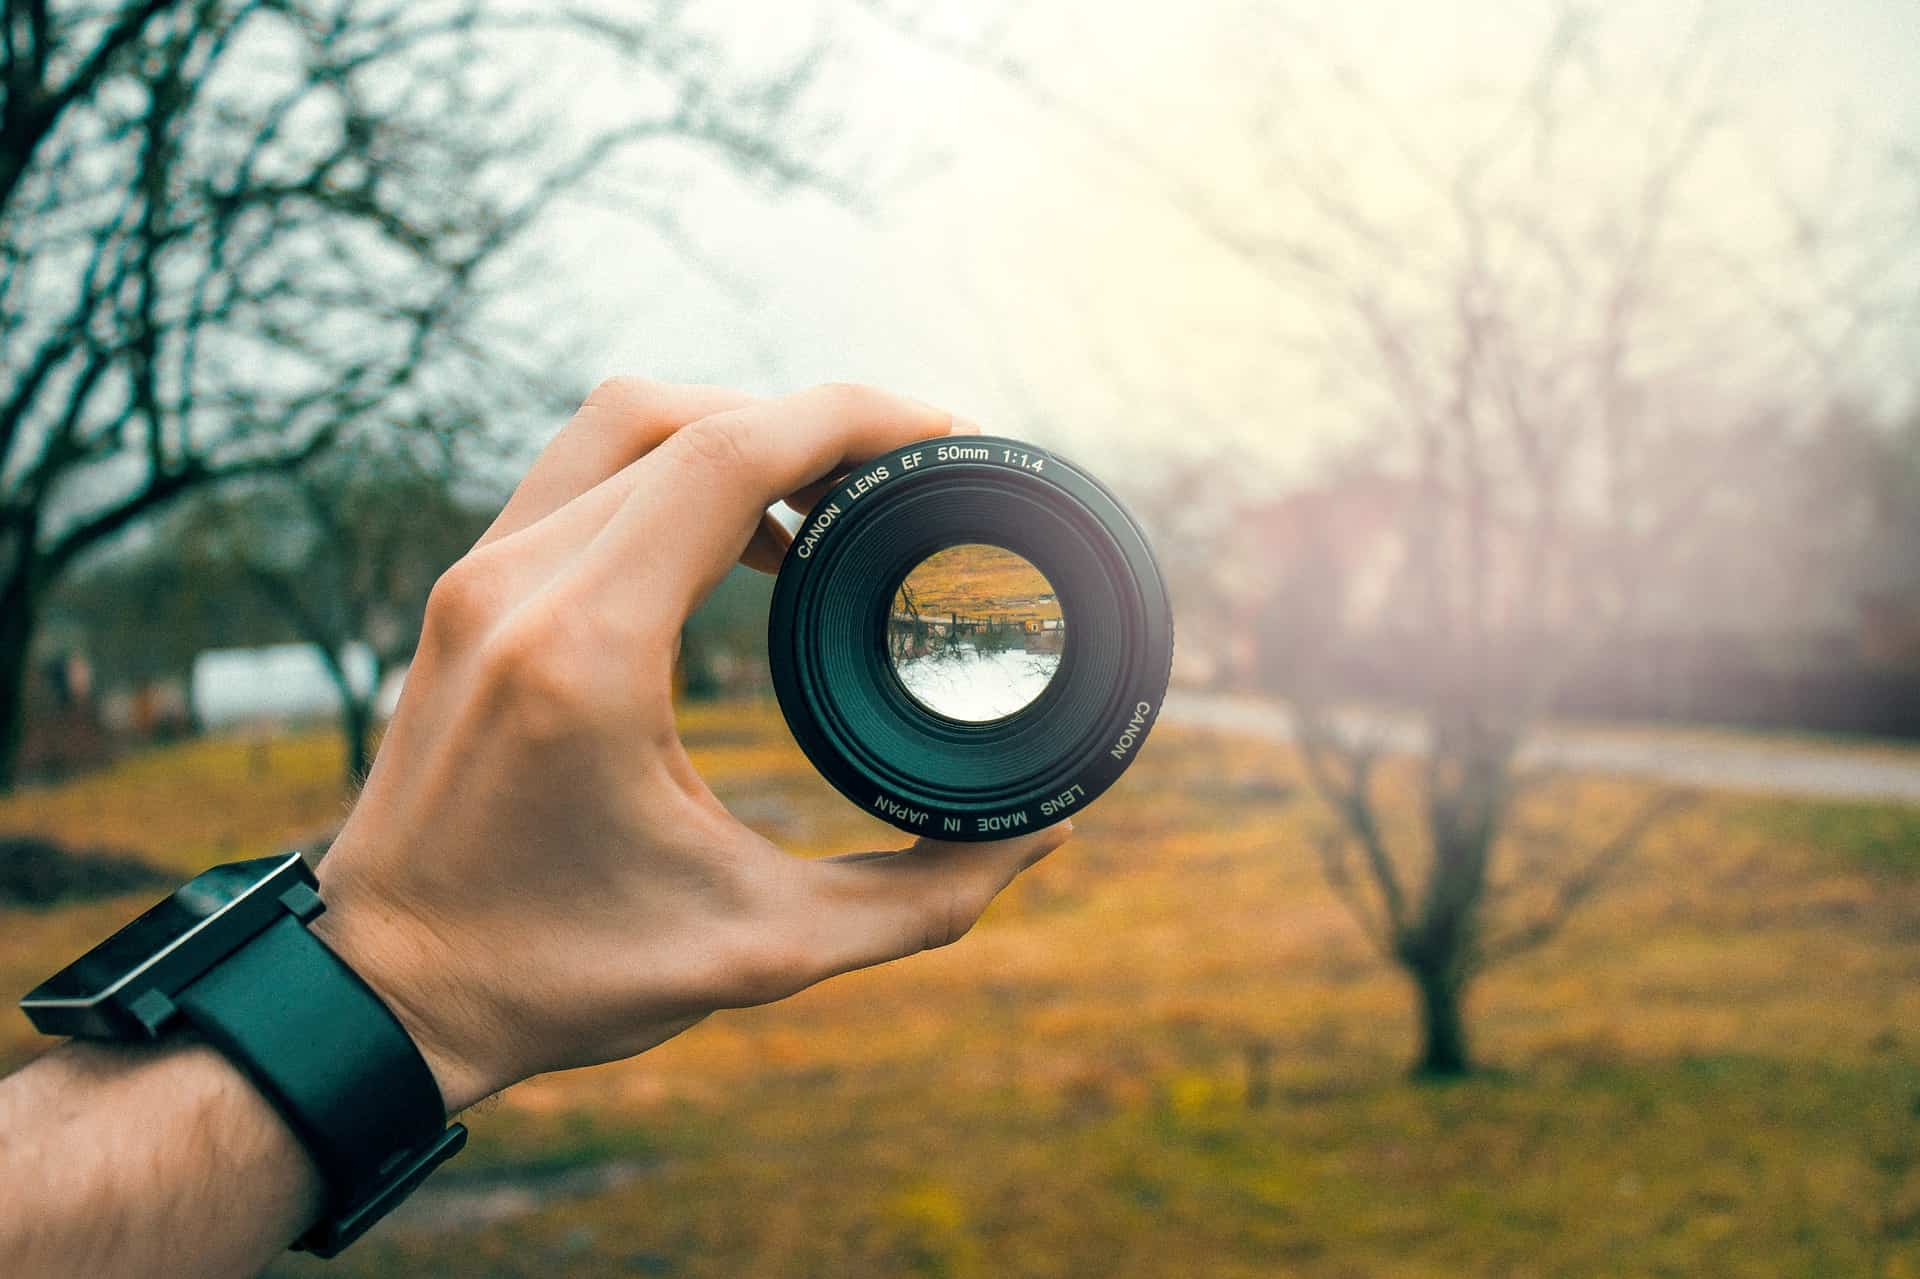 Landscape Photography: Some Common Mistakes and Solutions